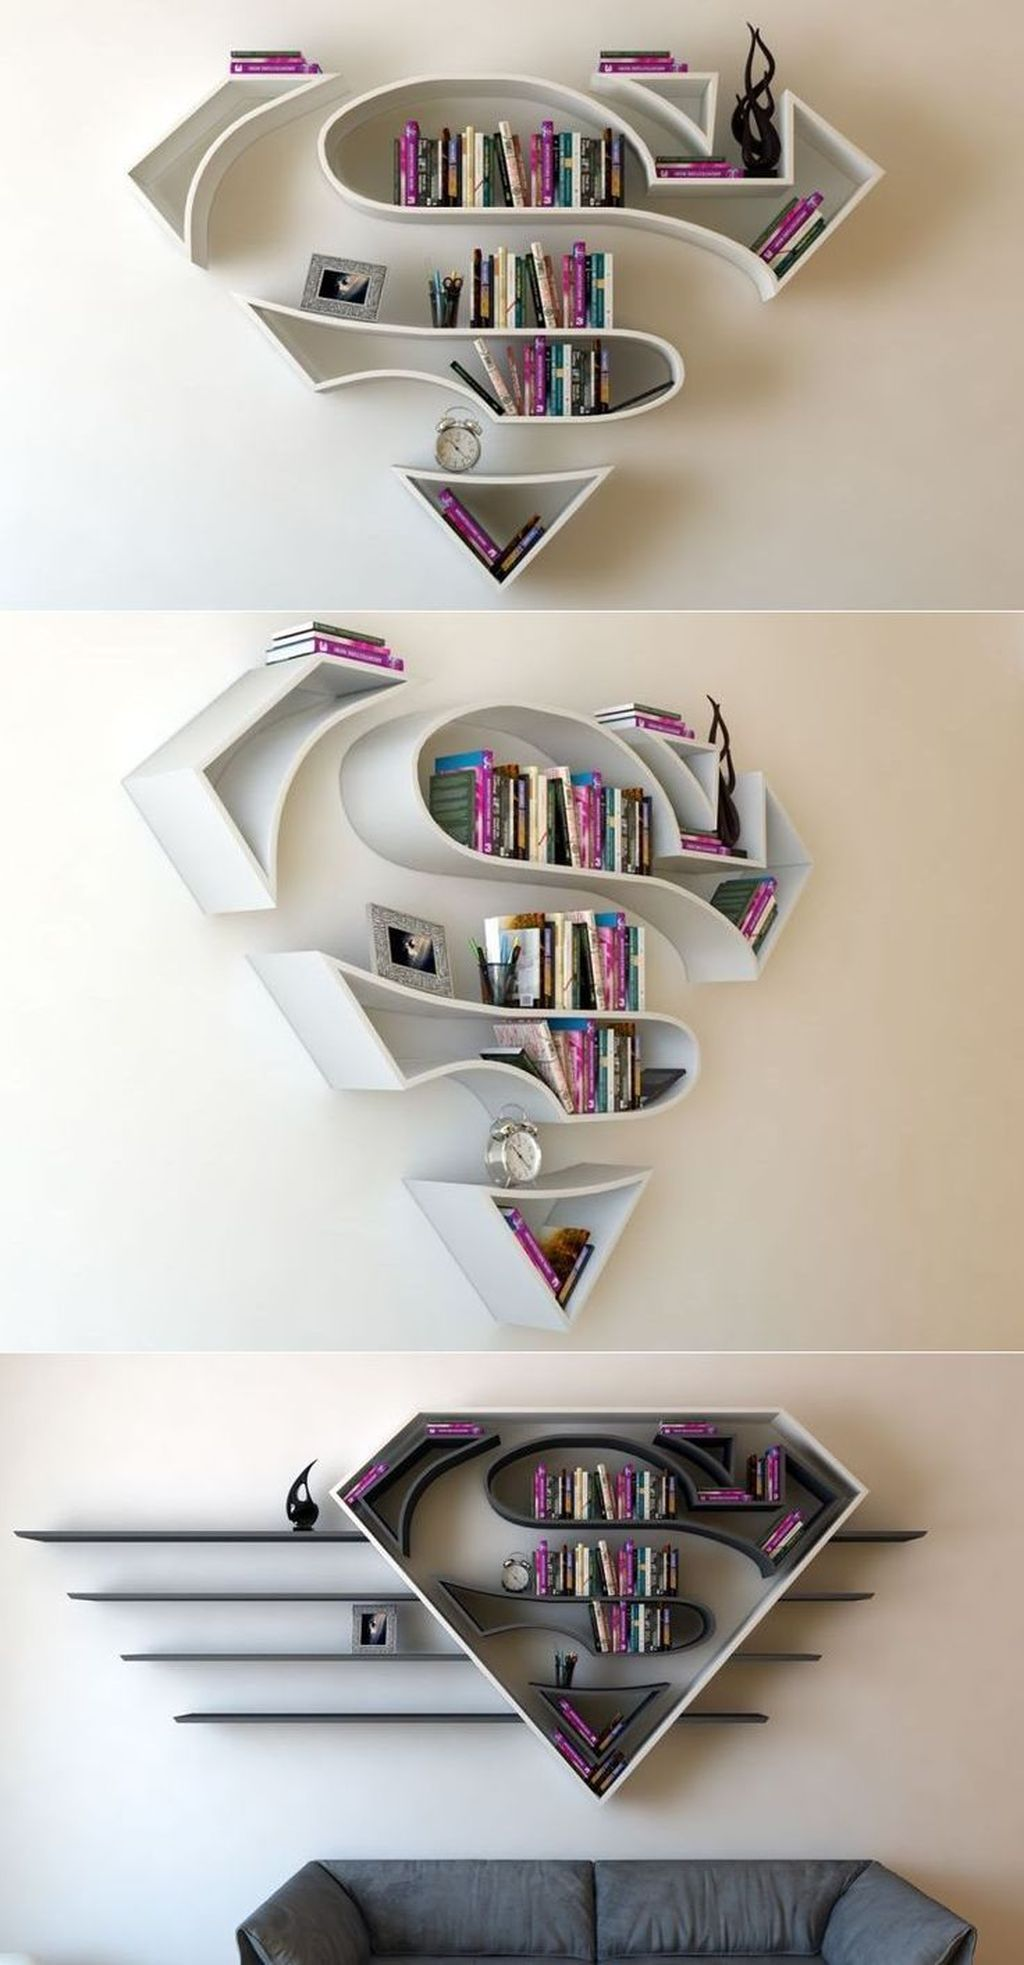 37 Creative Bookshelf Design Ideas To Copy Asap In 2020 Bookshelf Design Creative Bookshelves Diy Bookshelf Design